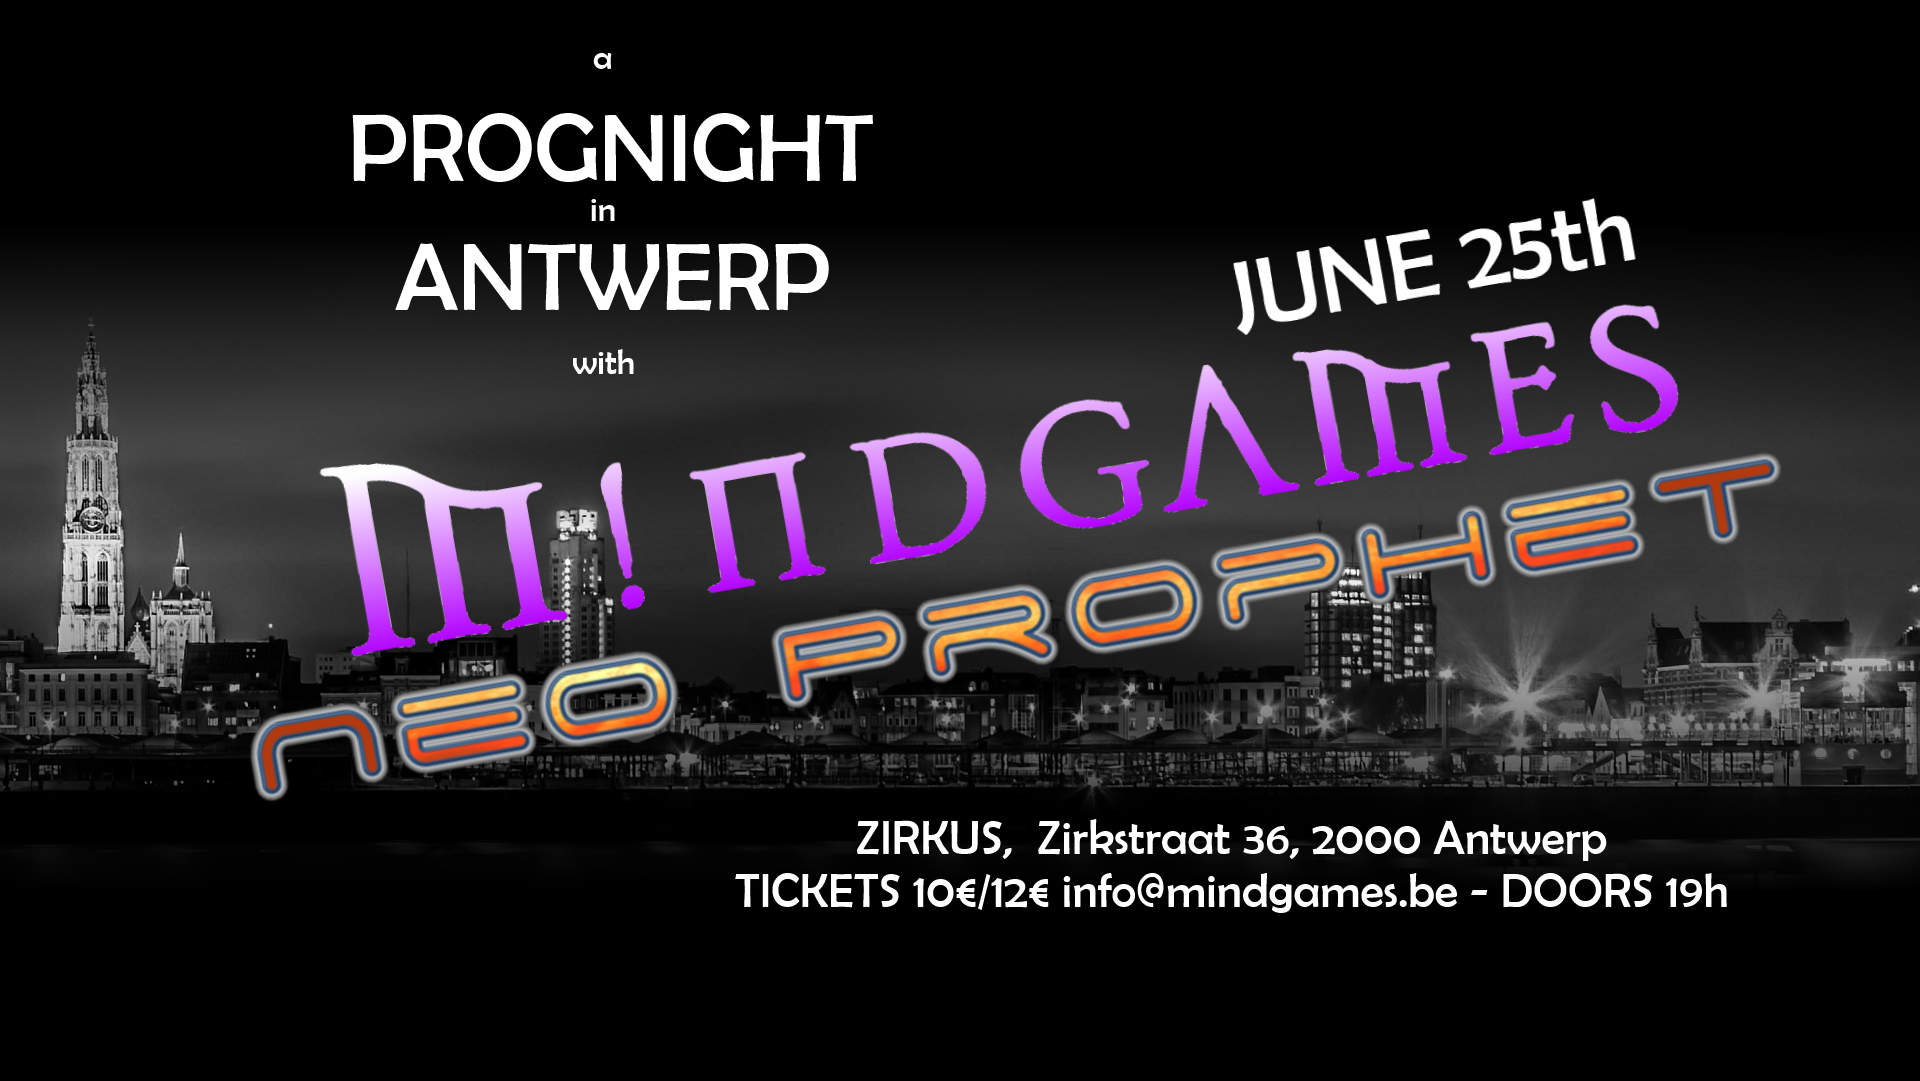 A Prognight in Antwerp